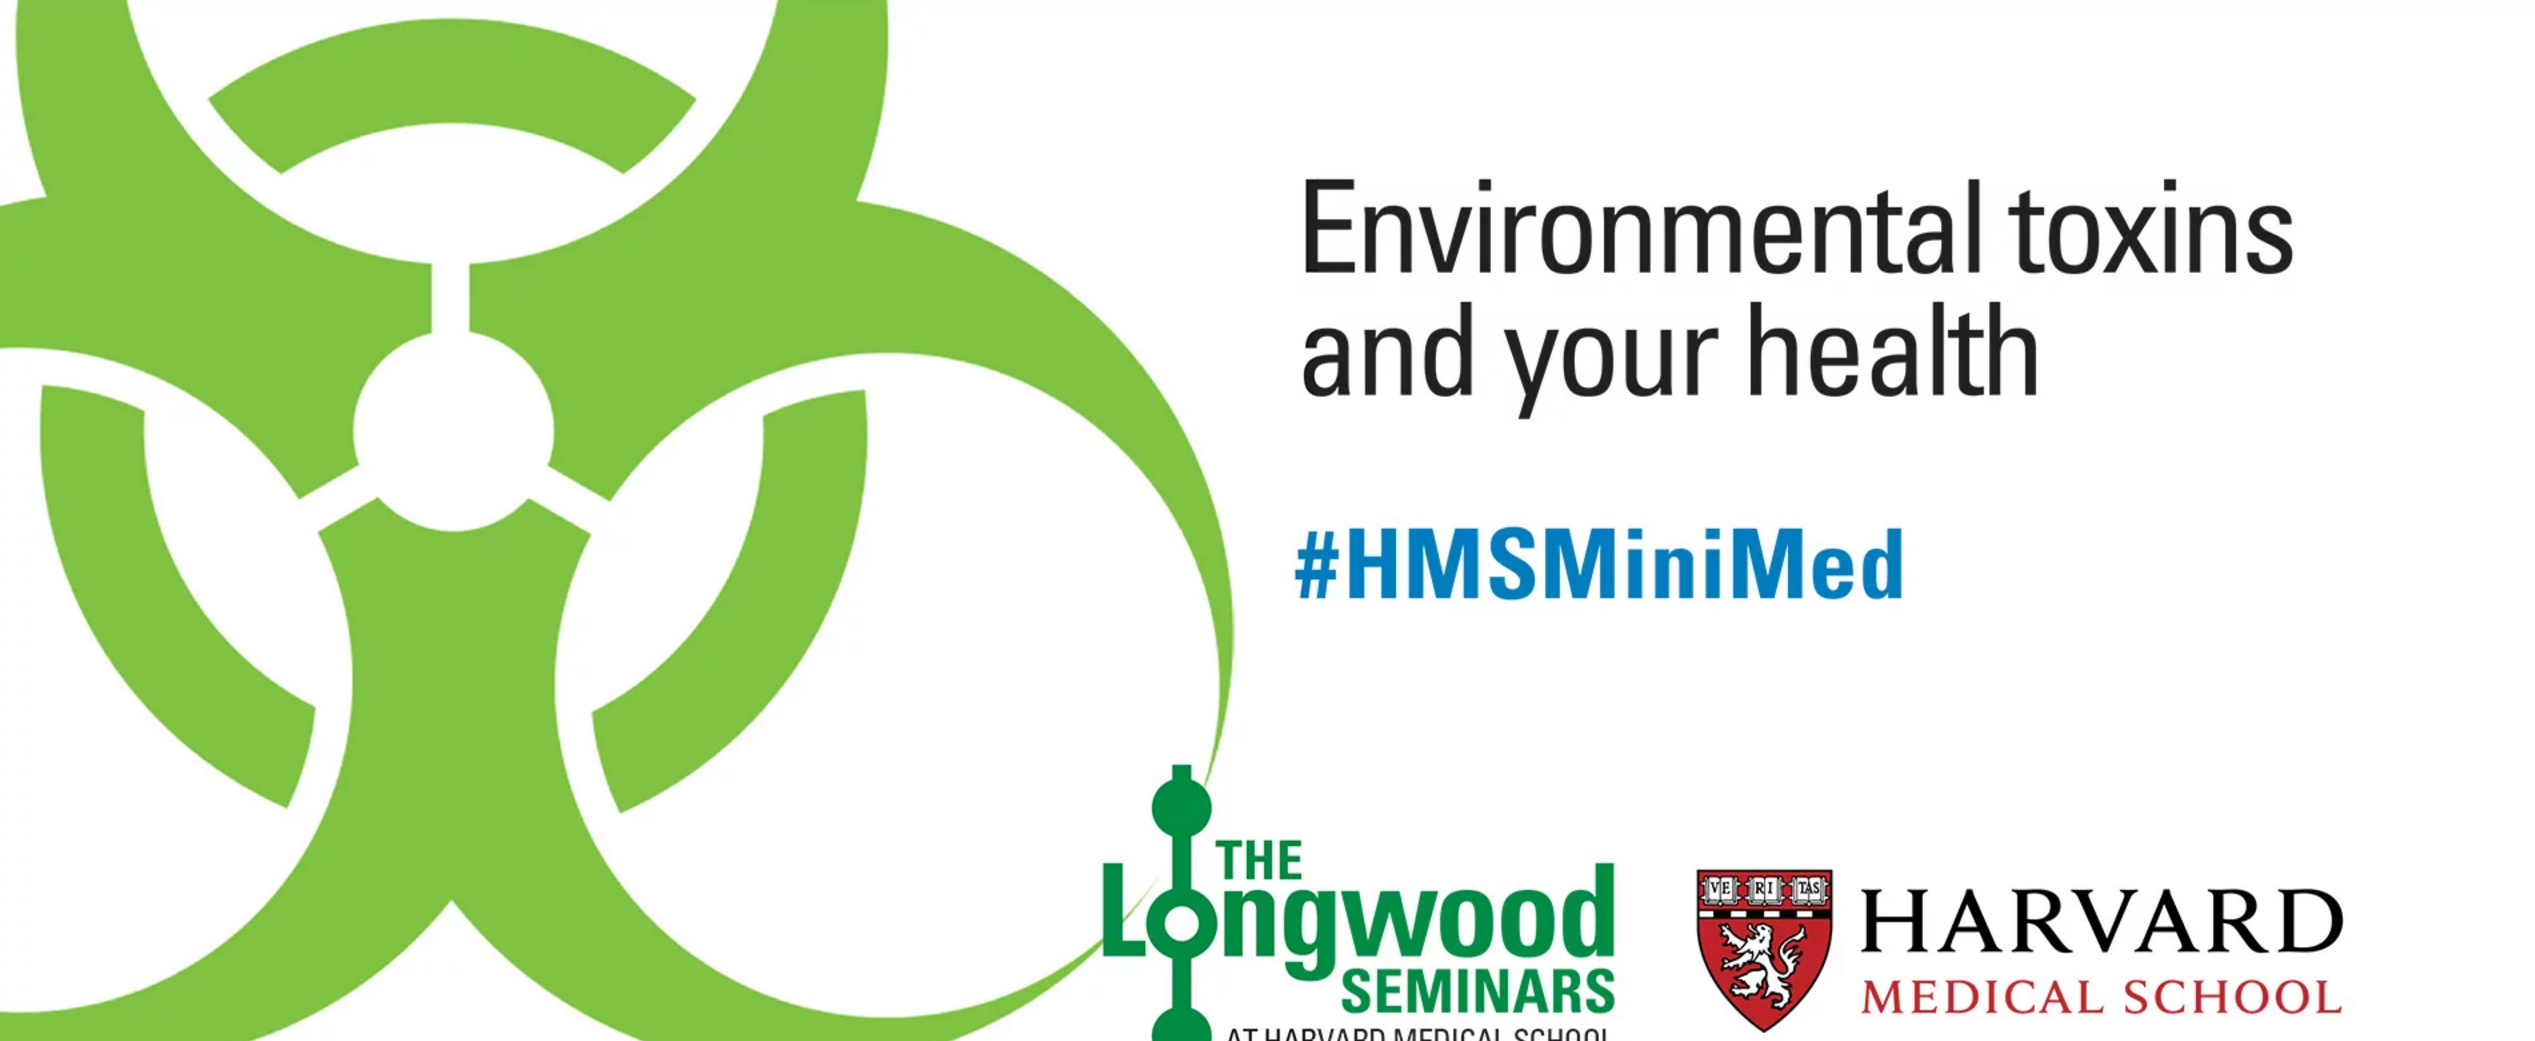 Taking It All In: Environmental toxins and your health   Sustainability at  Harvard